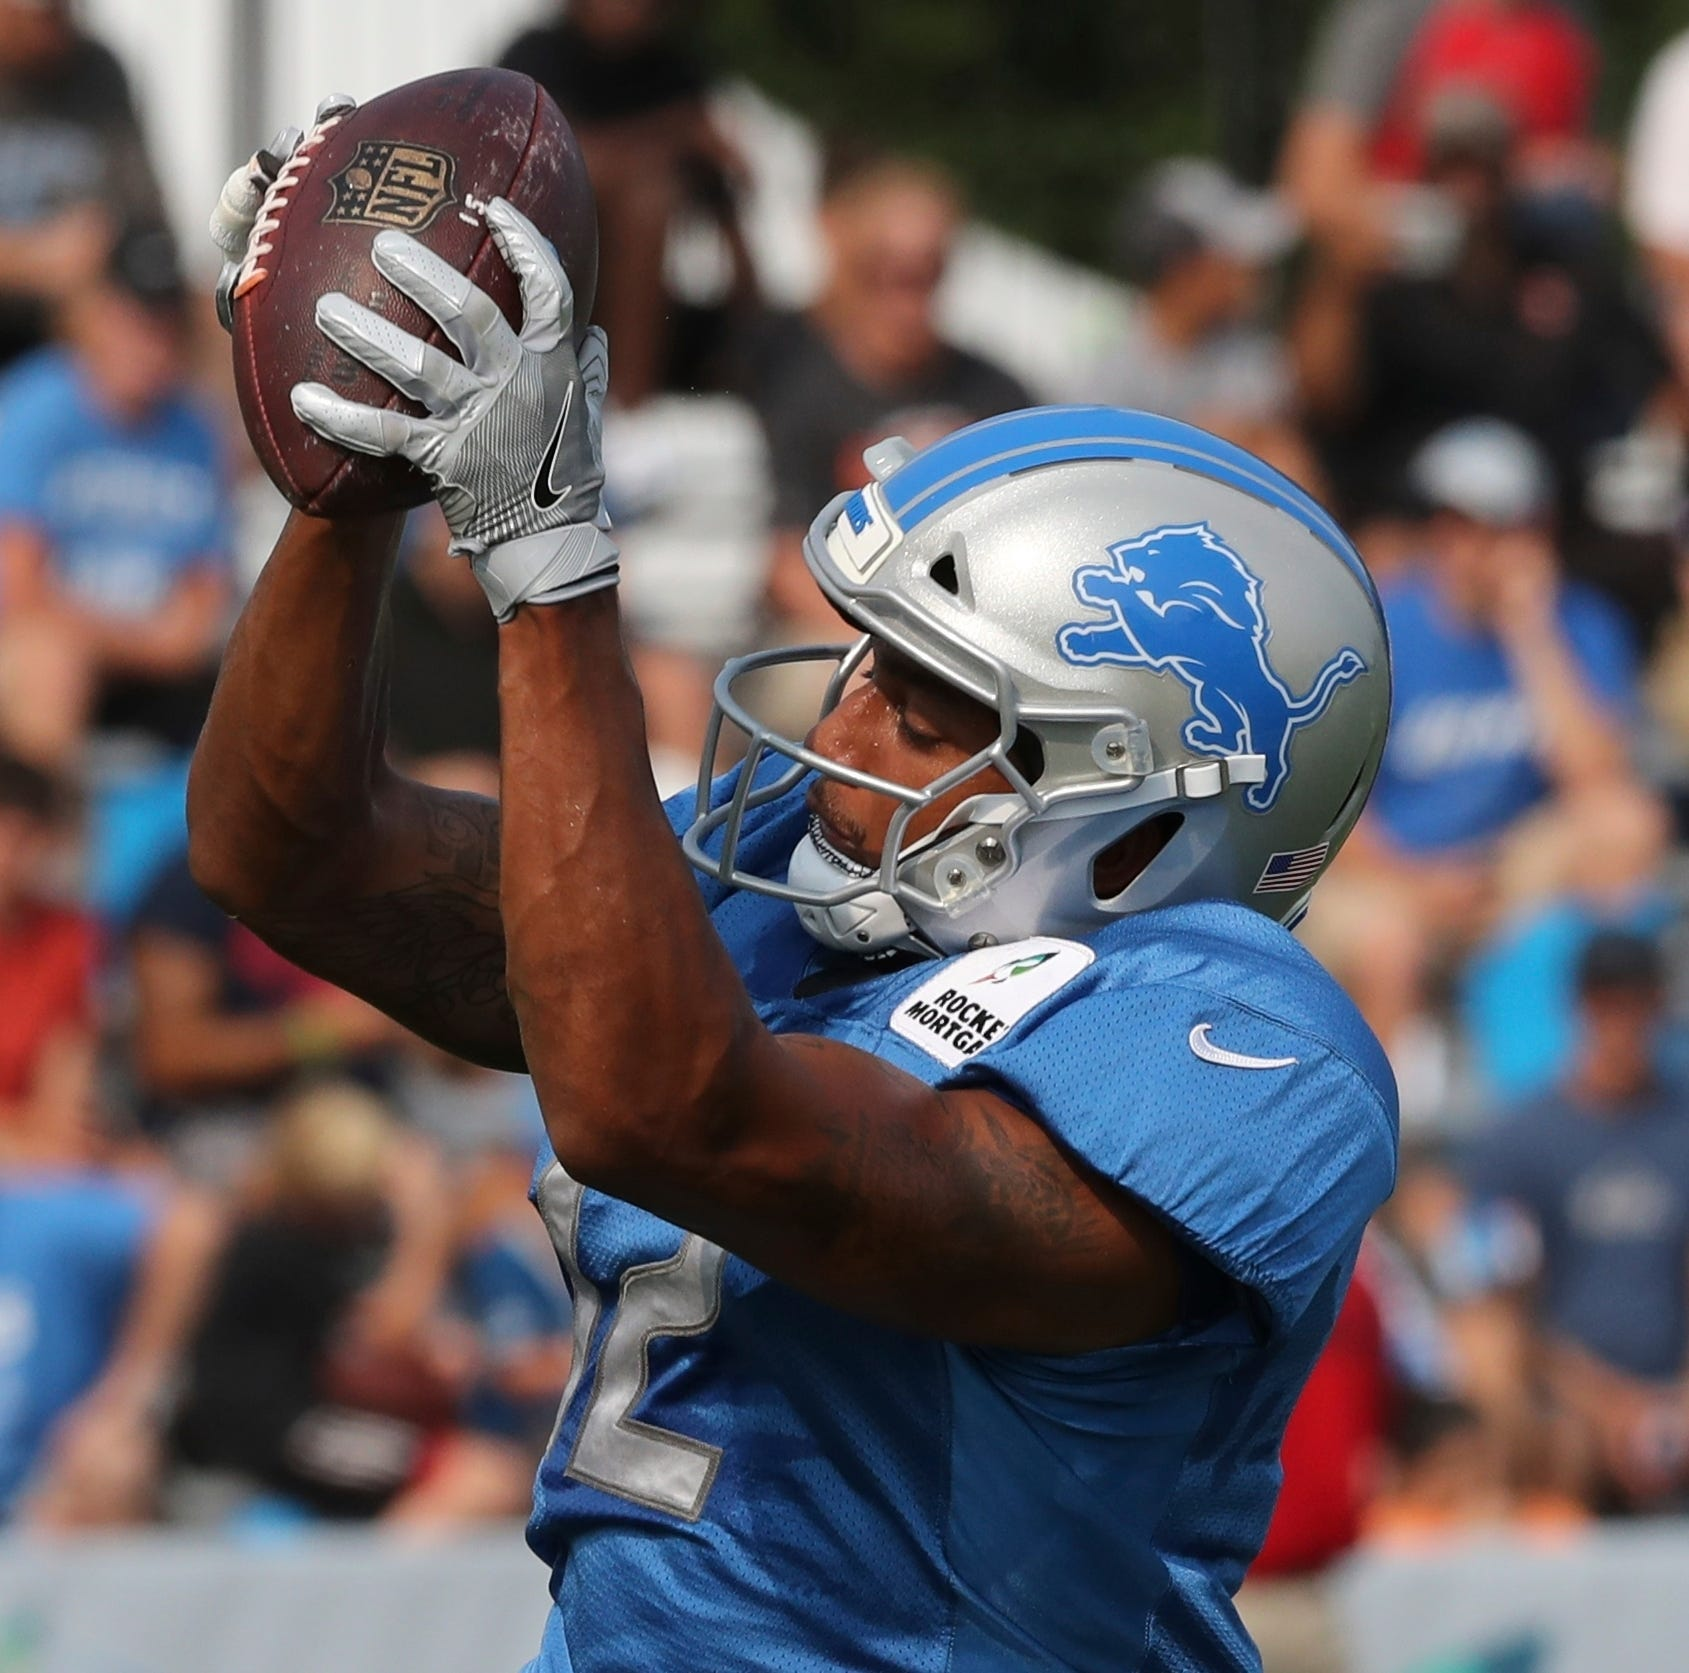 Detroit Lions score vs. New York Giants: Time, TV, radio info